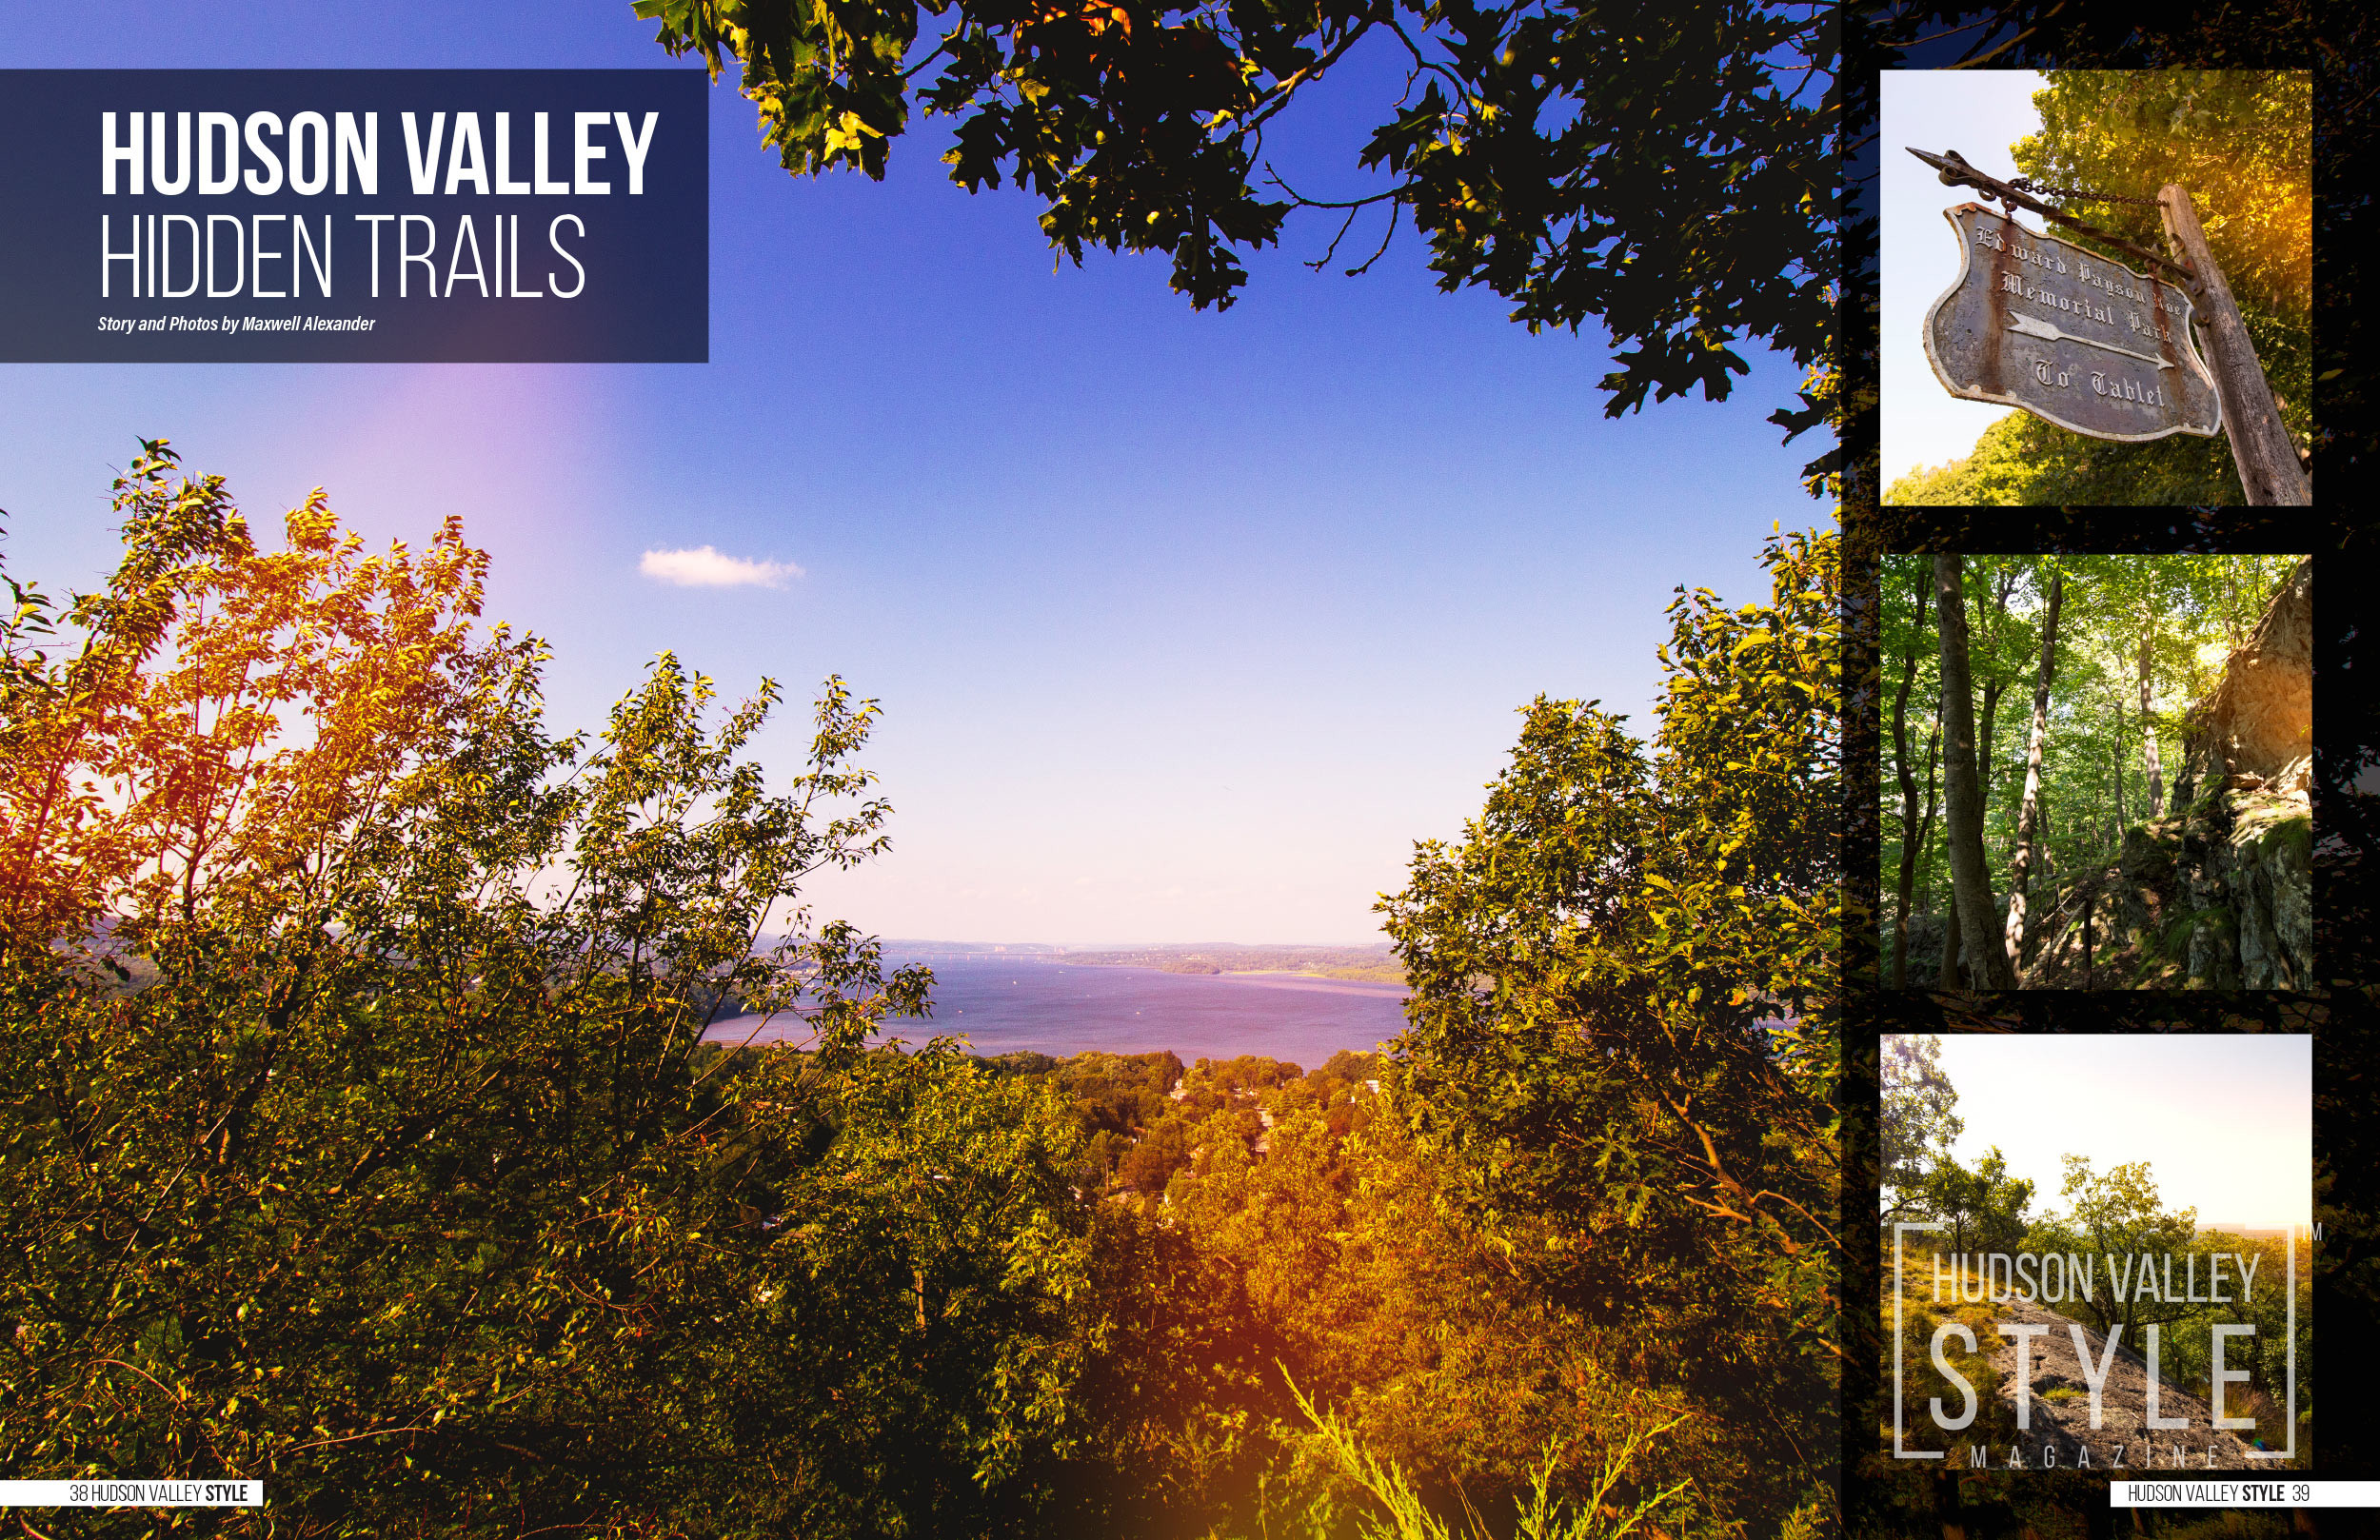 Hudson Valley Hidden Trails - Hiking Tips for 2018 Hiking Season